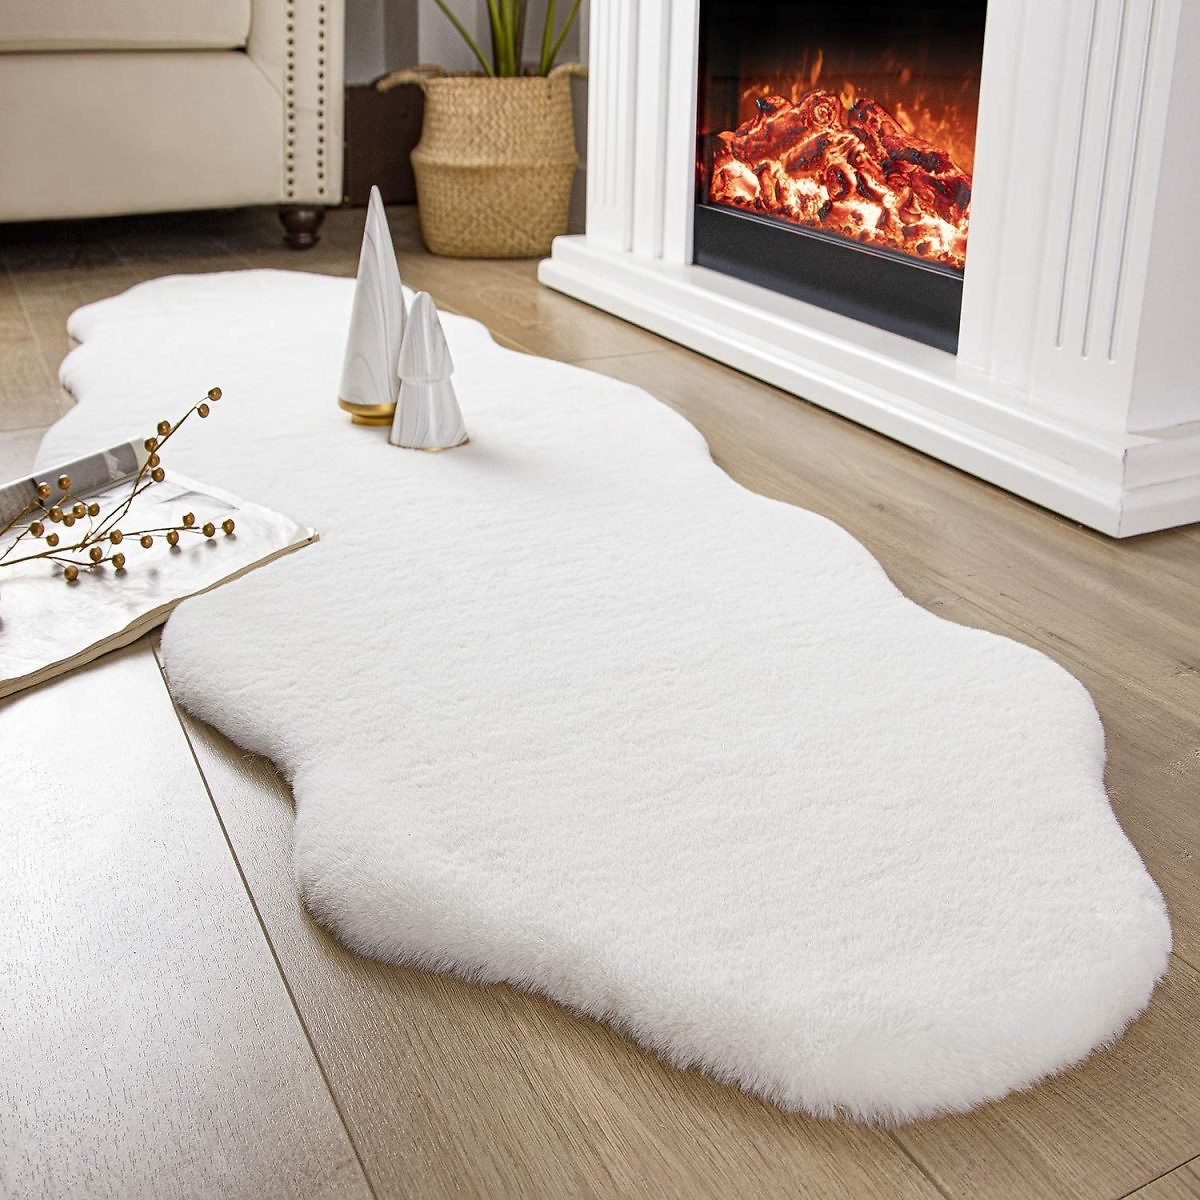 Ashler Ultra Soft Faux Rabbit Fur Chair Couch Cover Area Rug for Bedroom Floor Sofa Living Room White 2 X 6 Feet